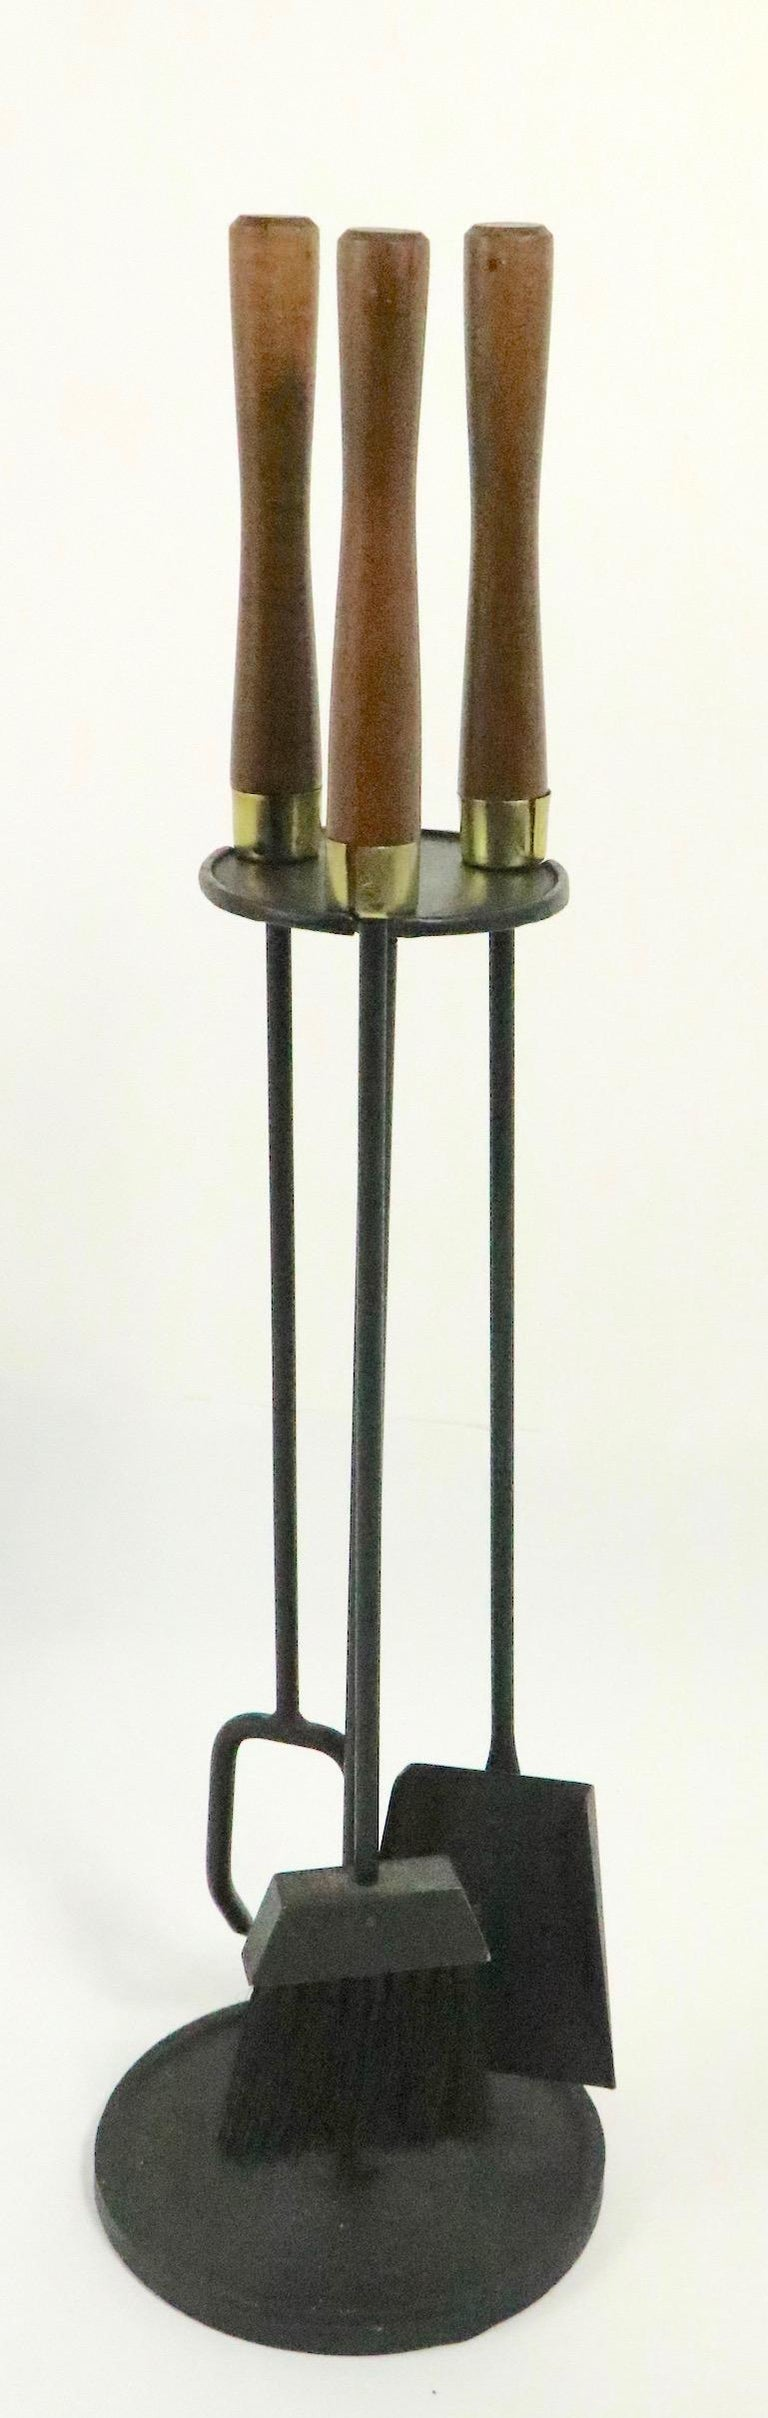 20th Century Mid Century  Fireplace Tools Set by Seymour For Sale